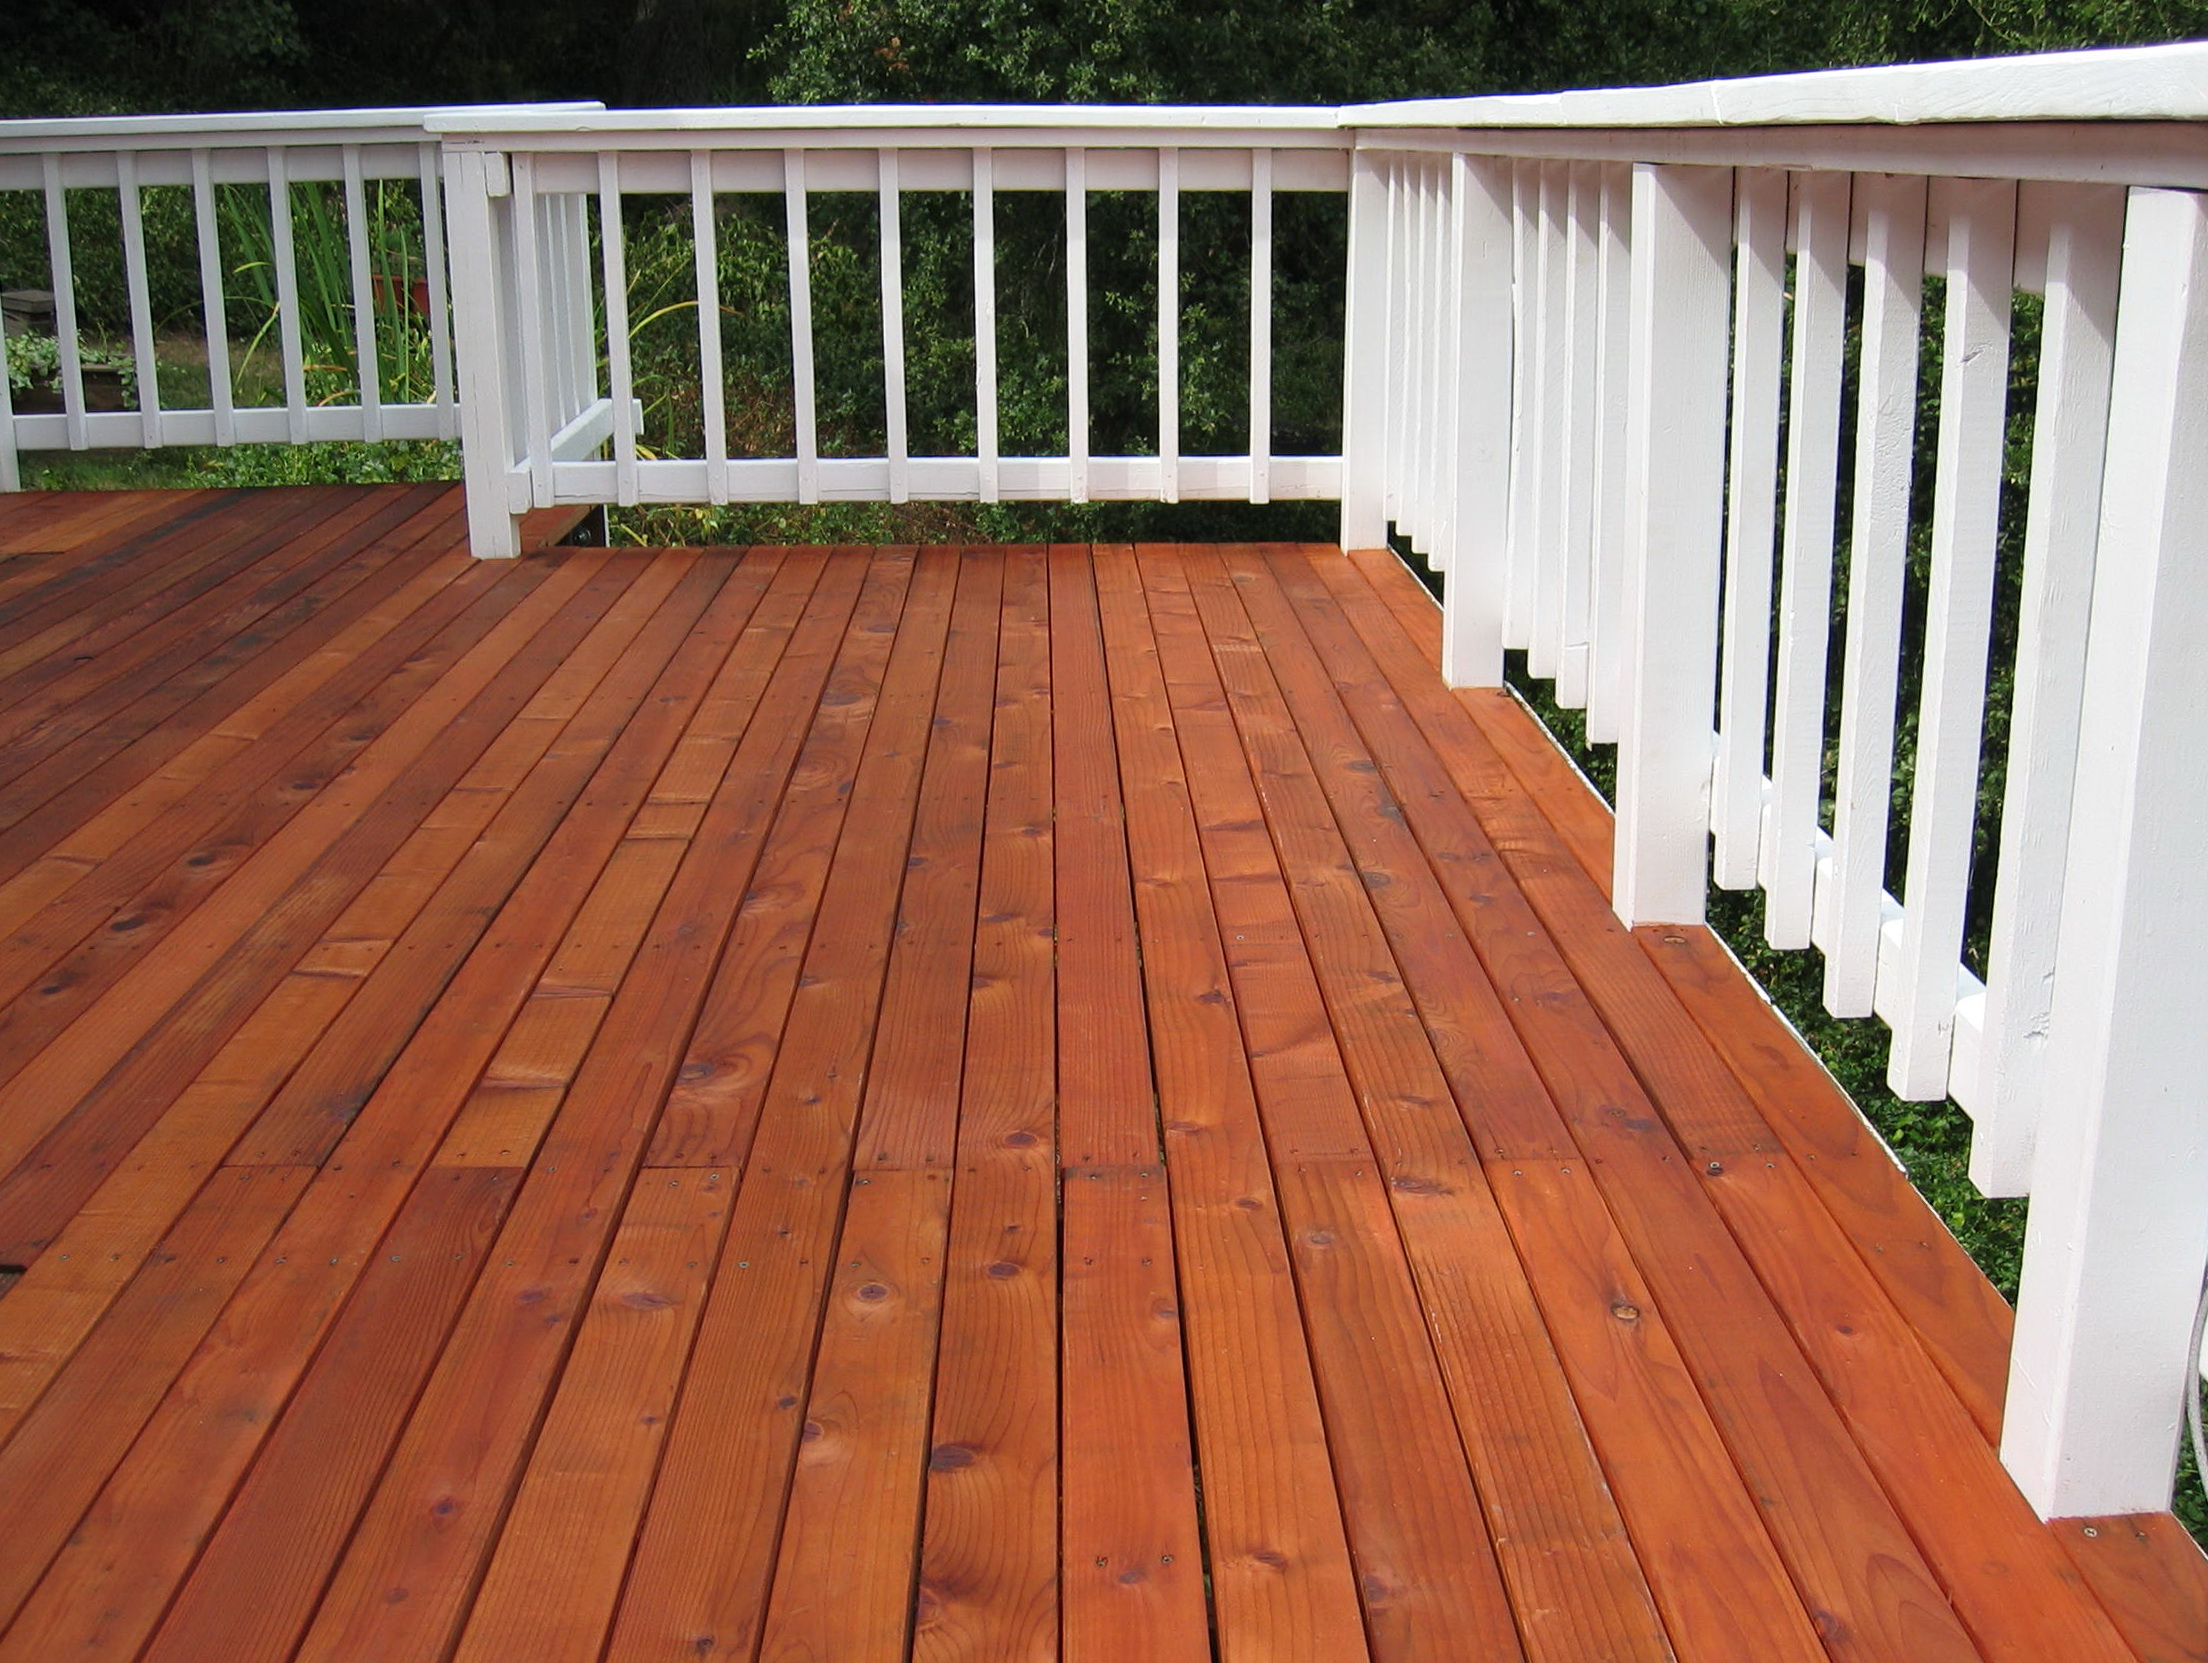 Deck Stain Colors For Pressure Treated Wood